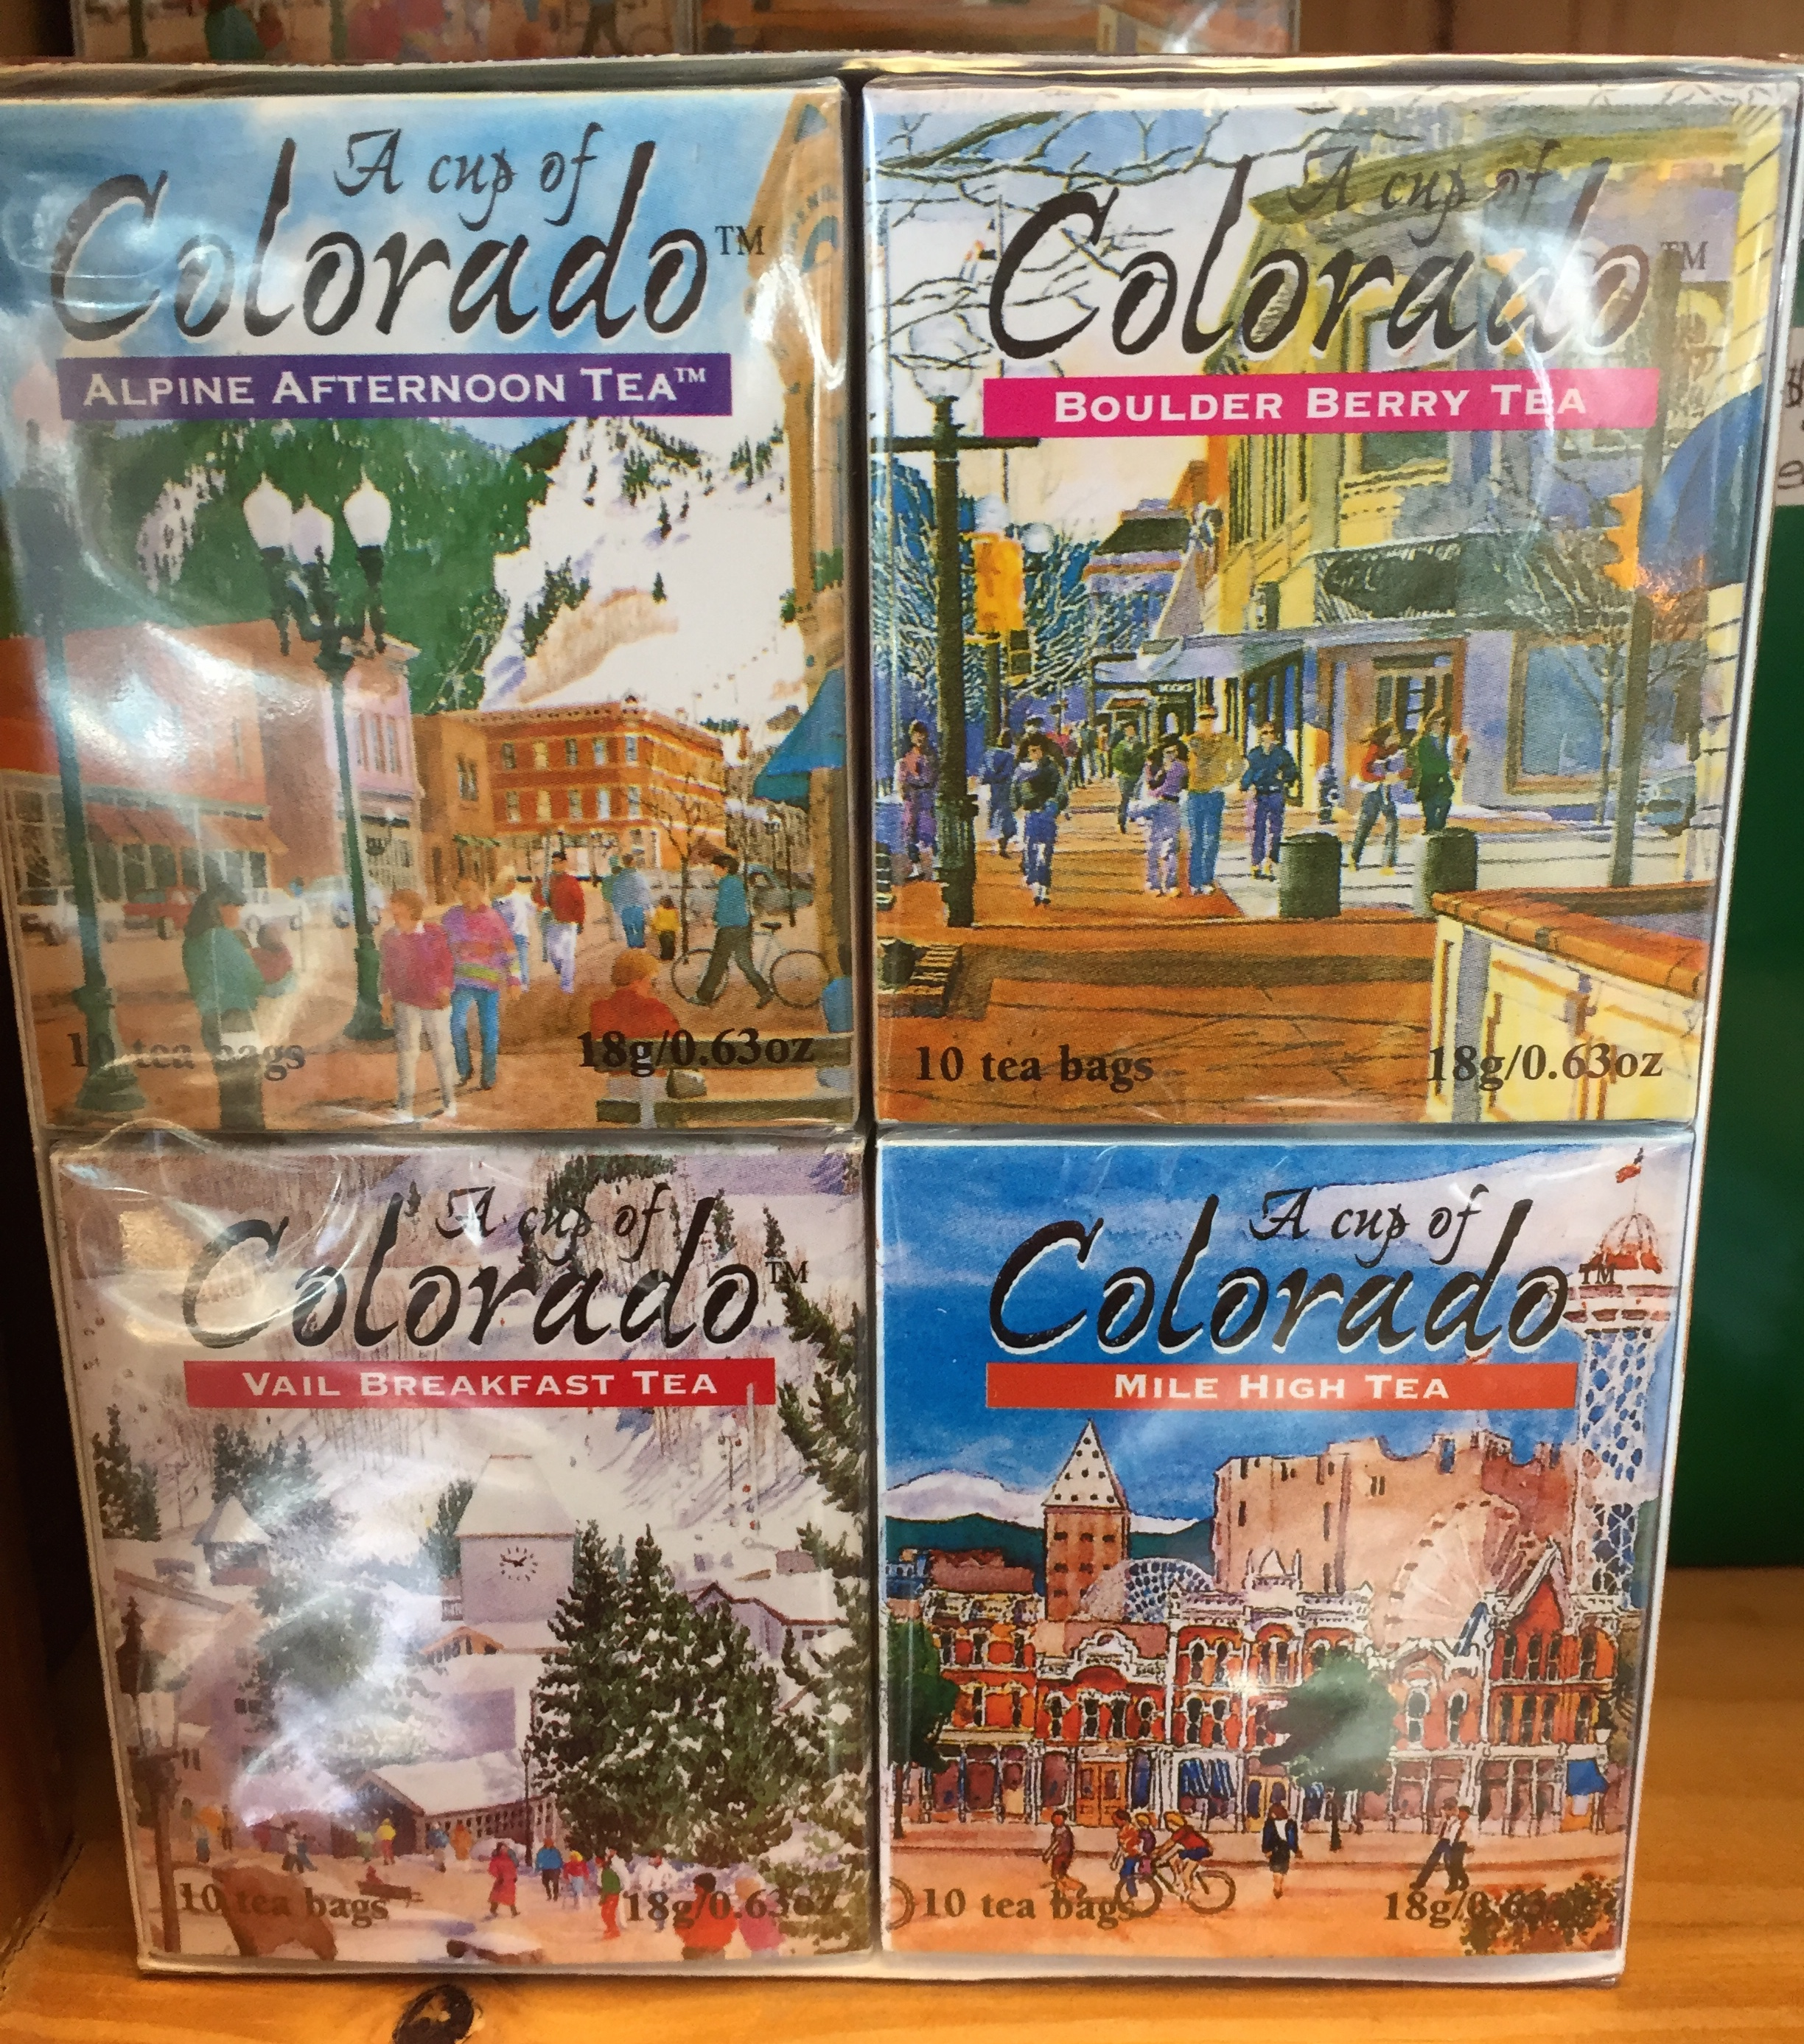 If your house sitter is a tea drinker, a mug and some tea from Colorado could make the perfect gift!